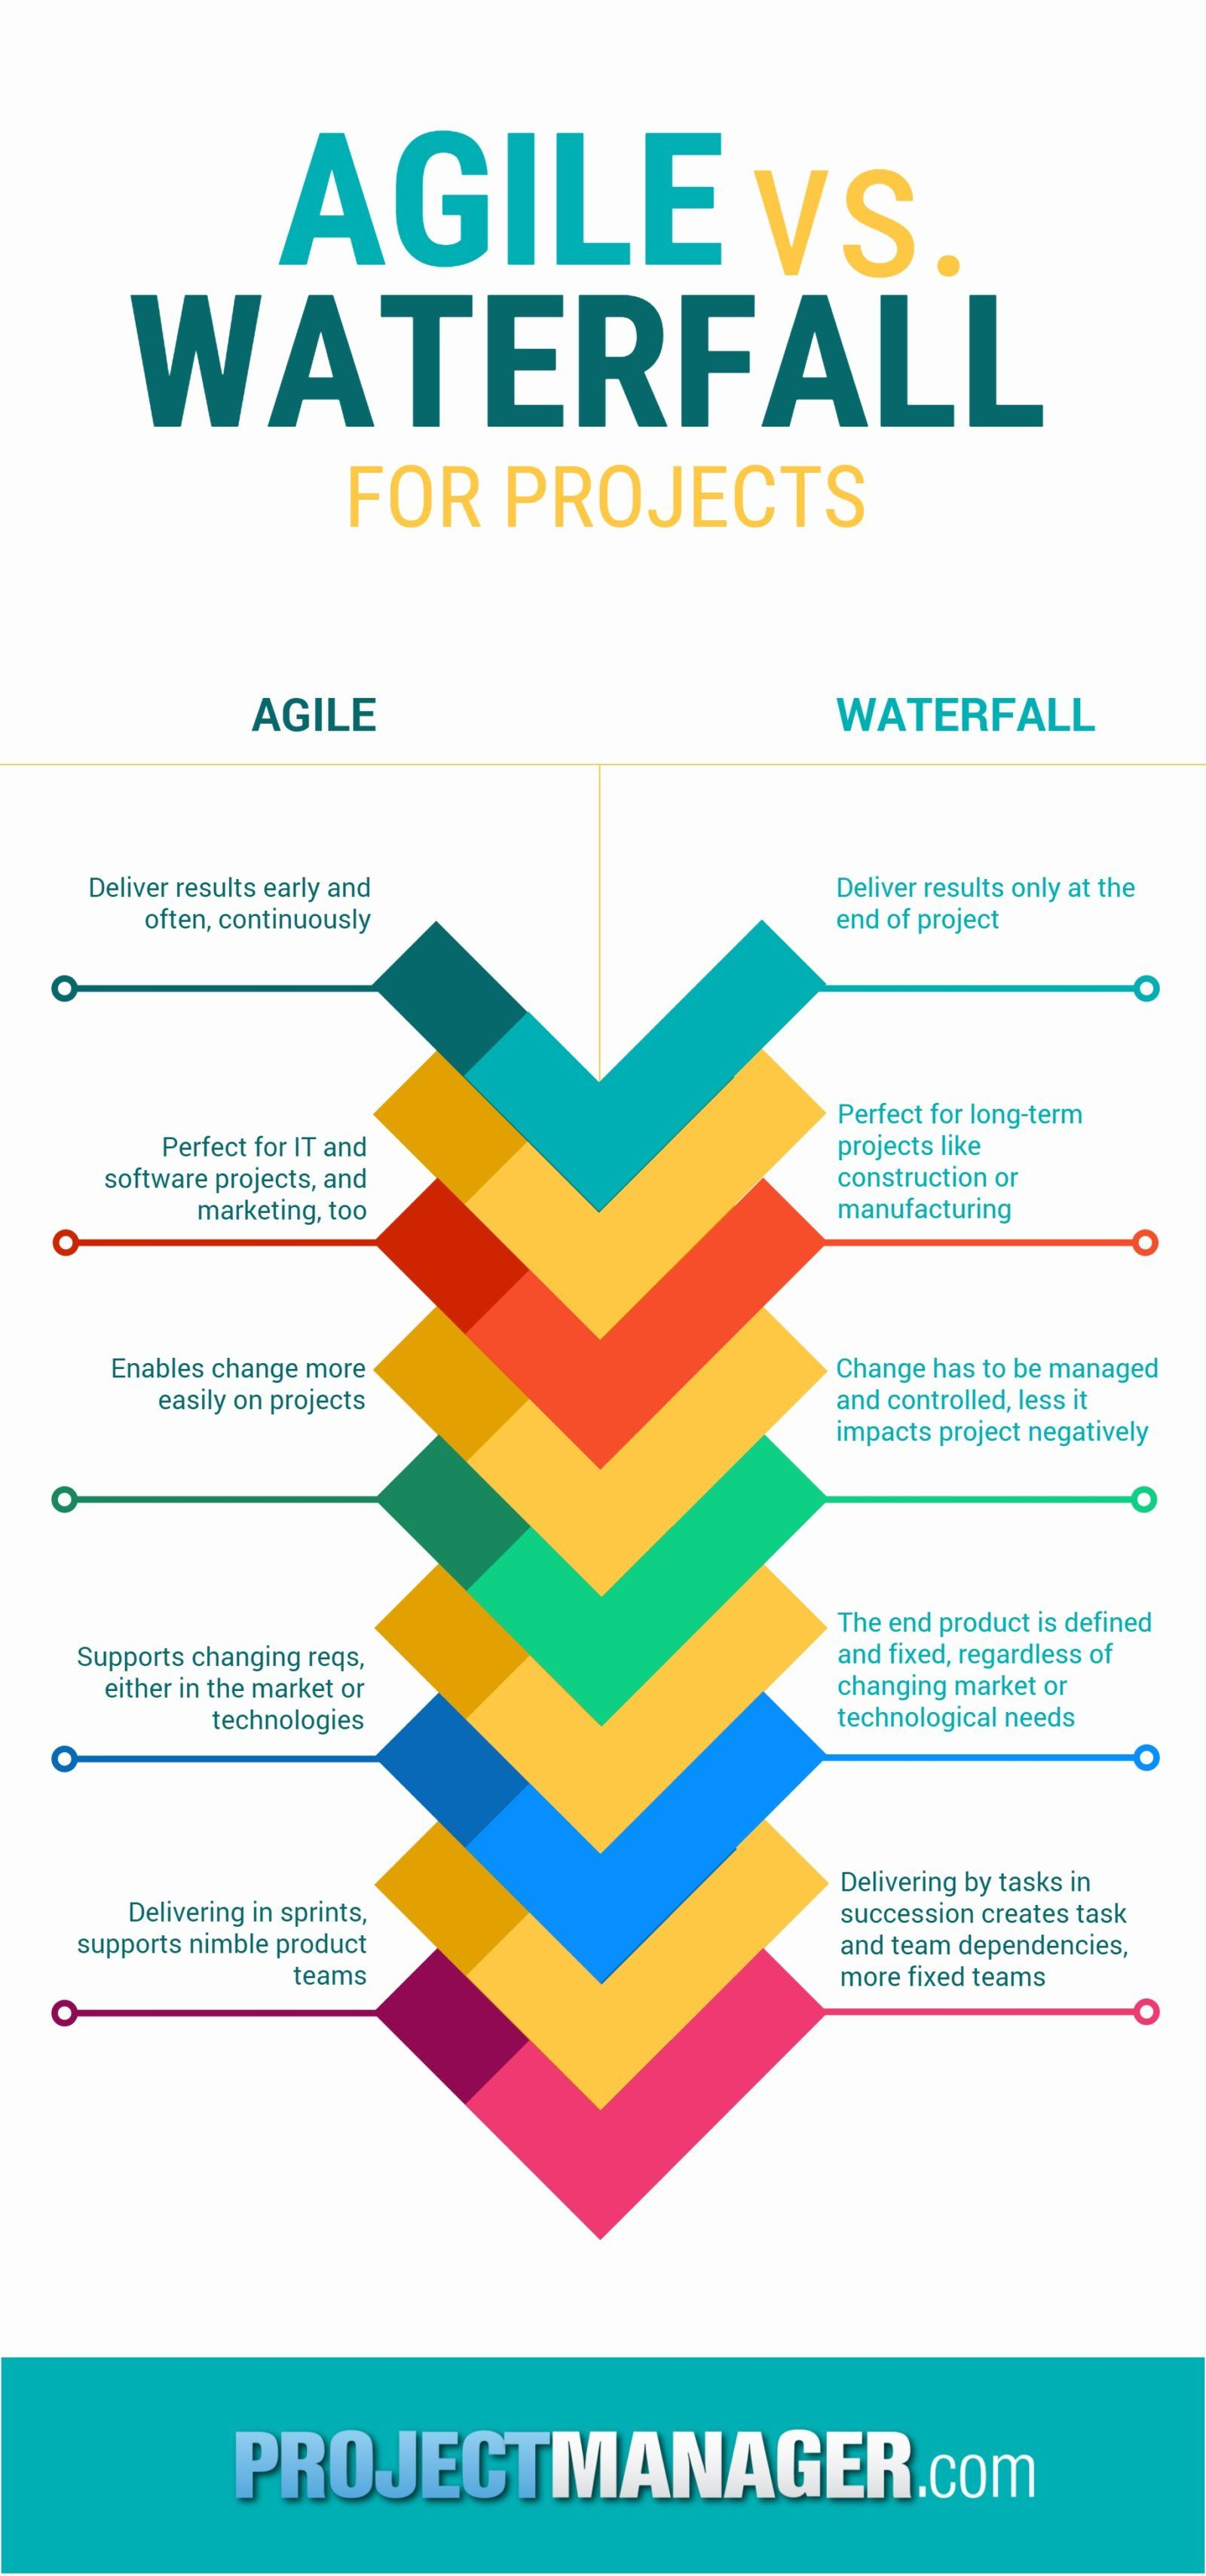 Agile versus waterfall for projects agile pinterest for When to use agile vs waterfall